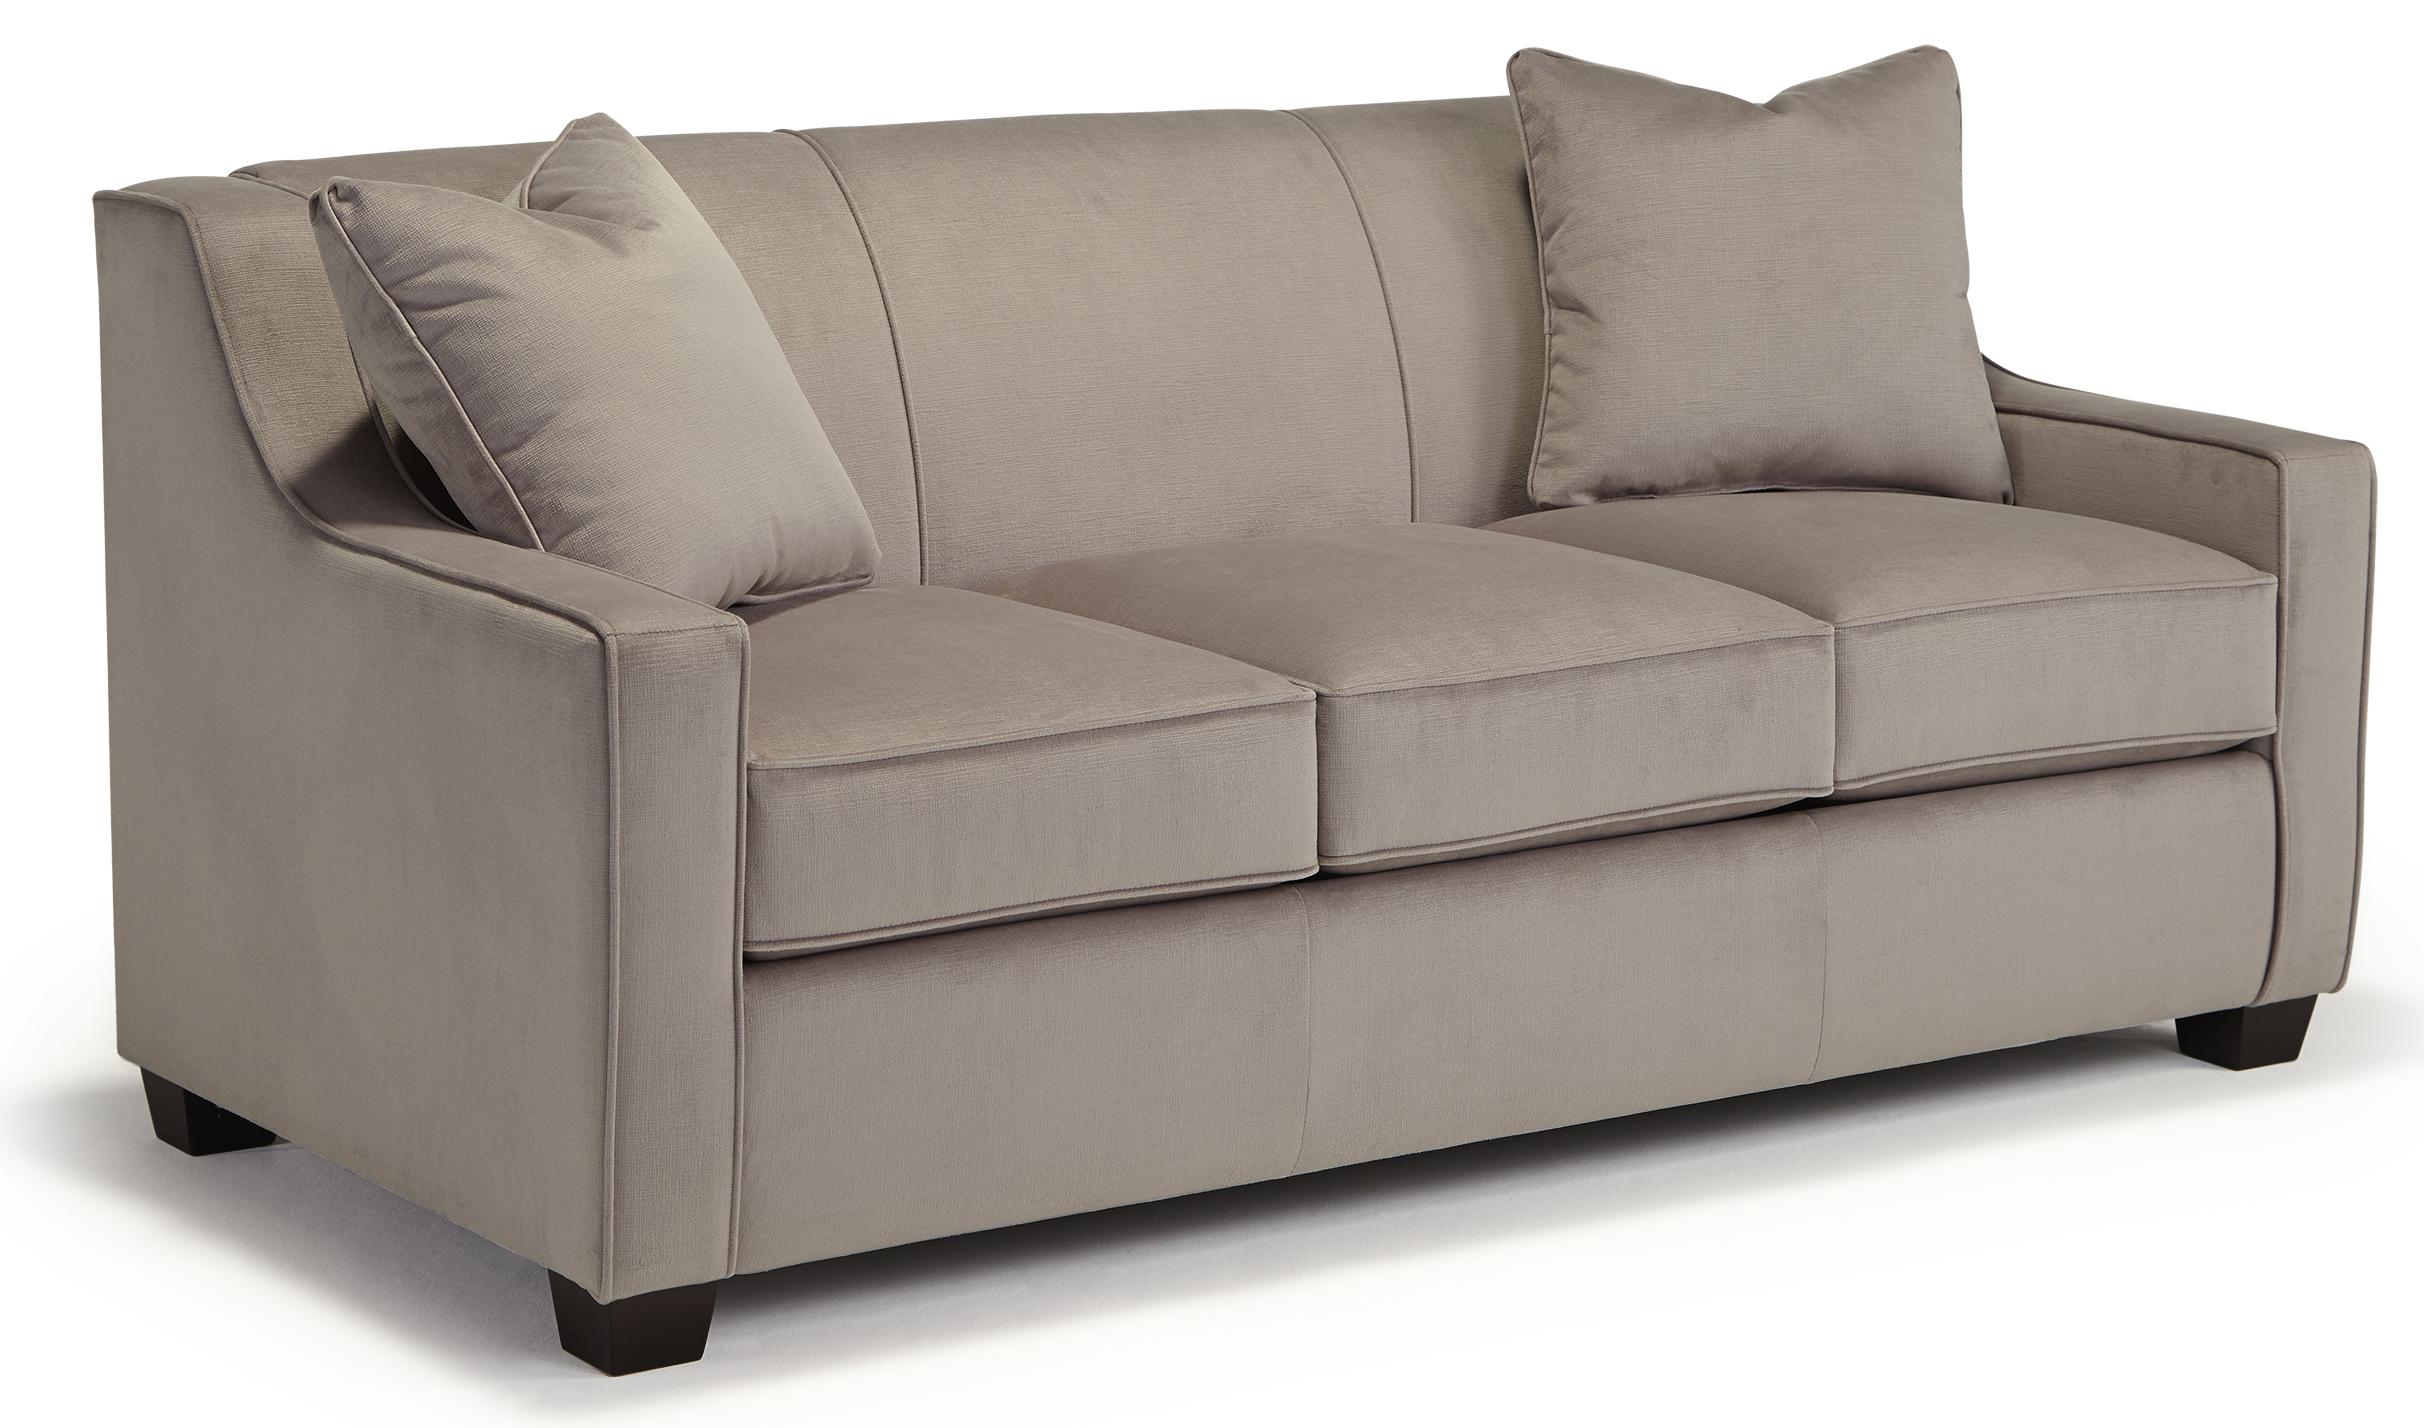 Marinette Full Sleeper by Best Home Furnishings at Suburban Furniture